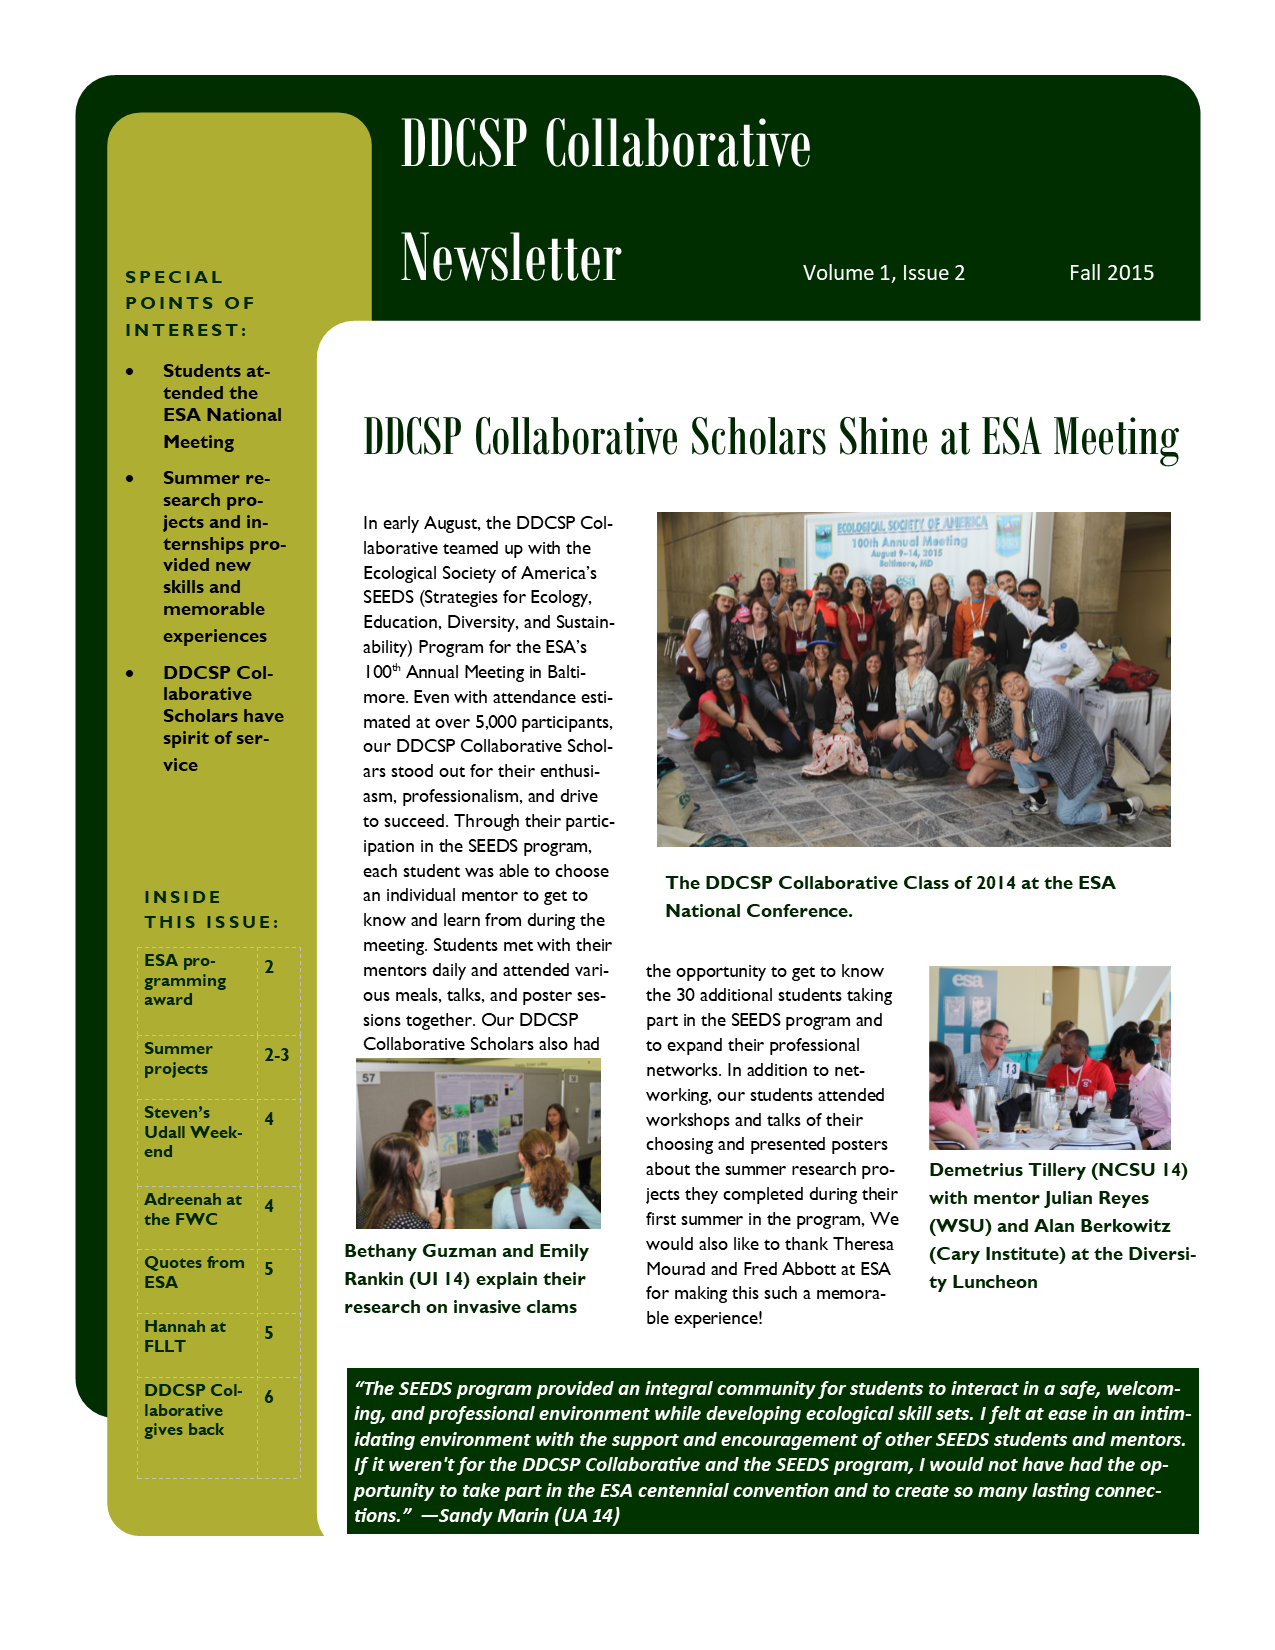 NewsletterFall2015 Page1.png